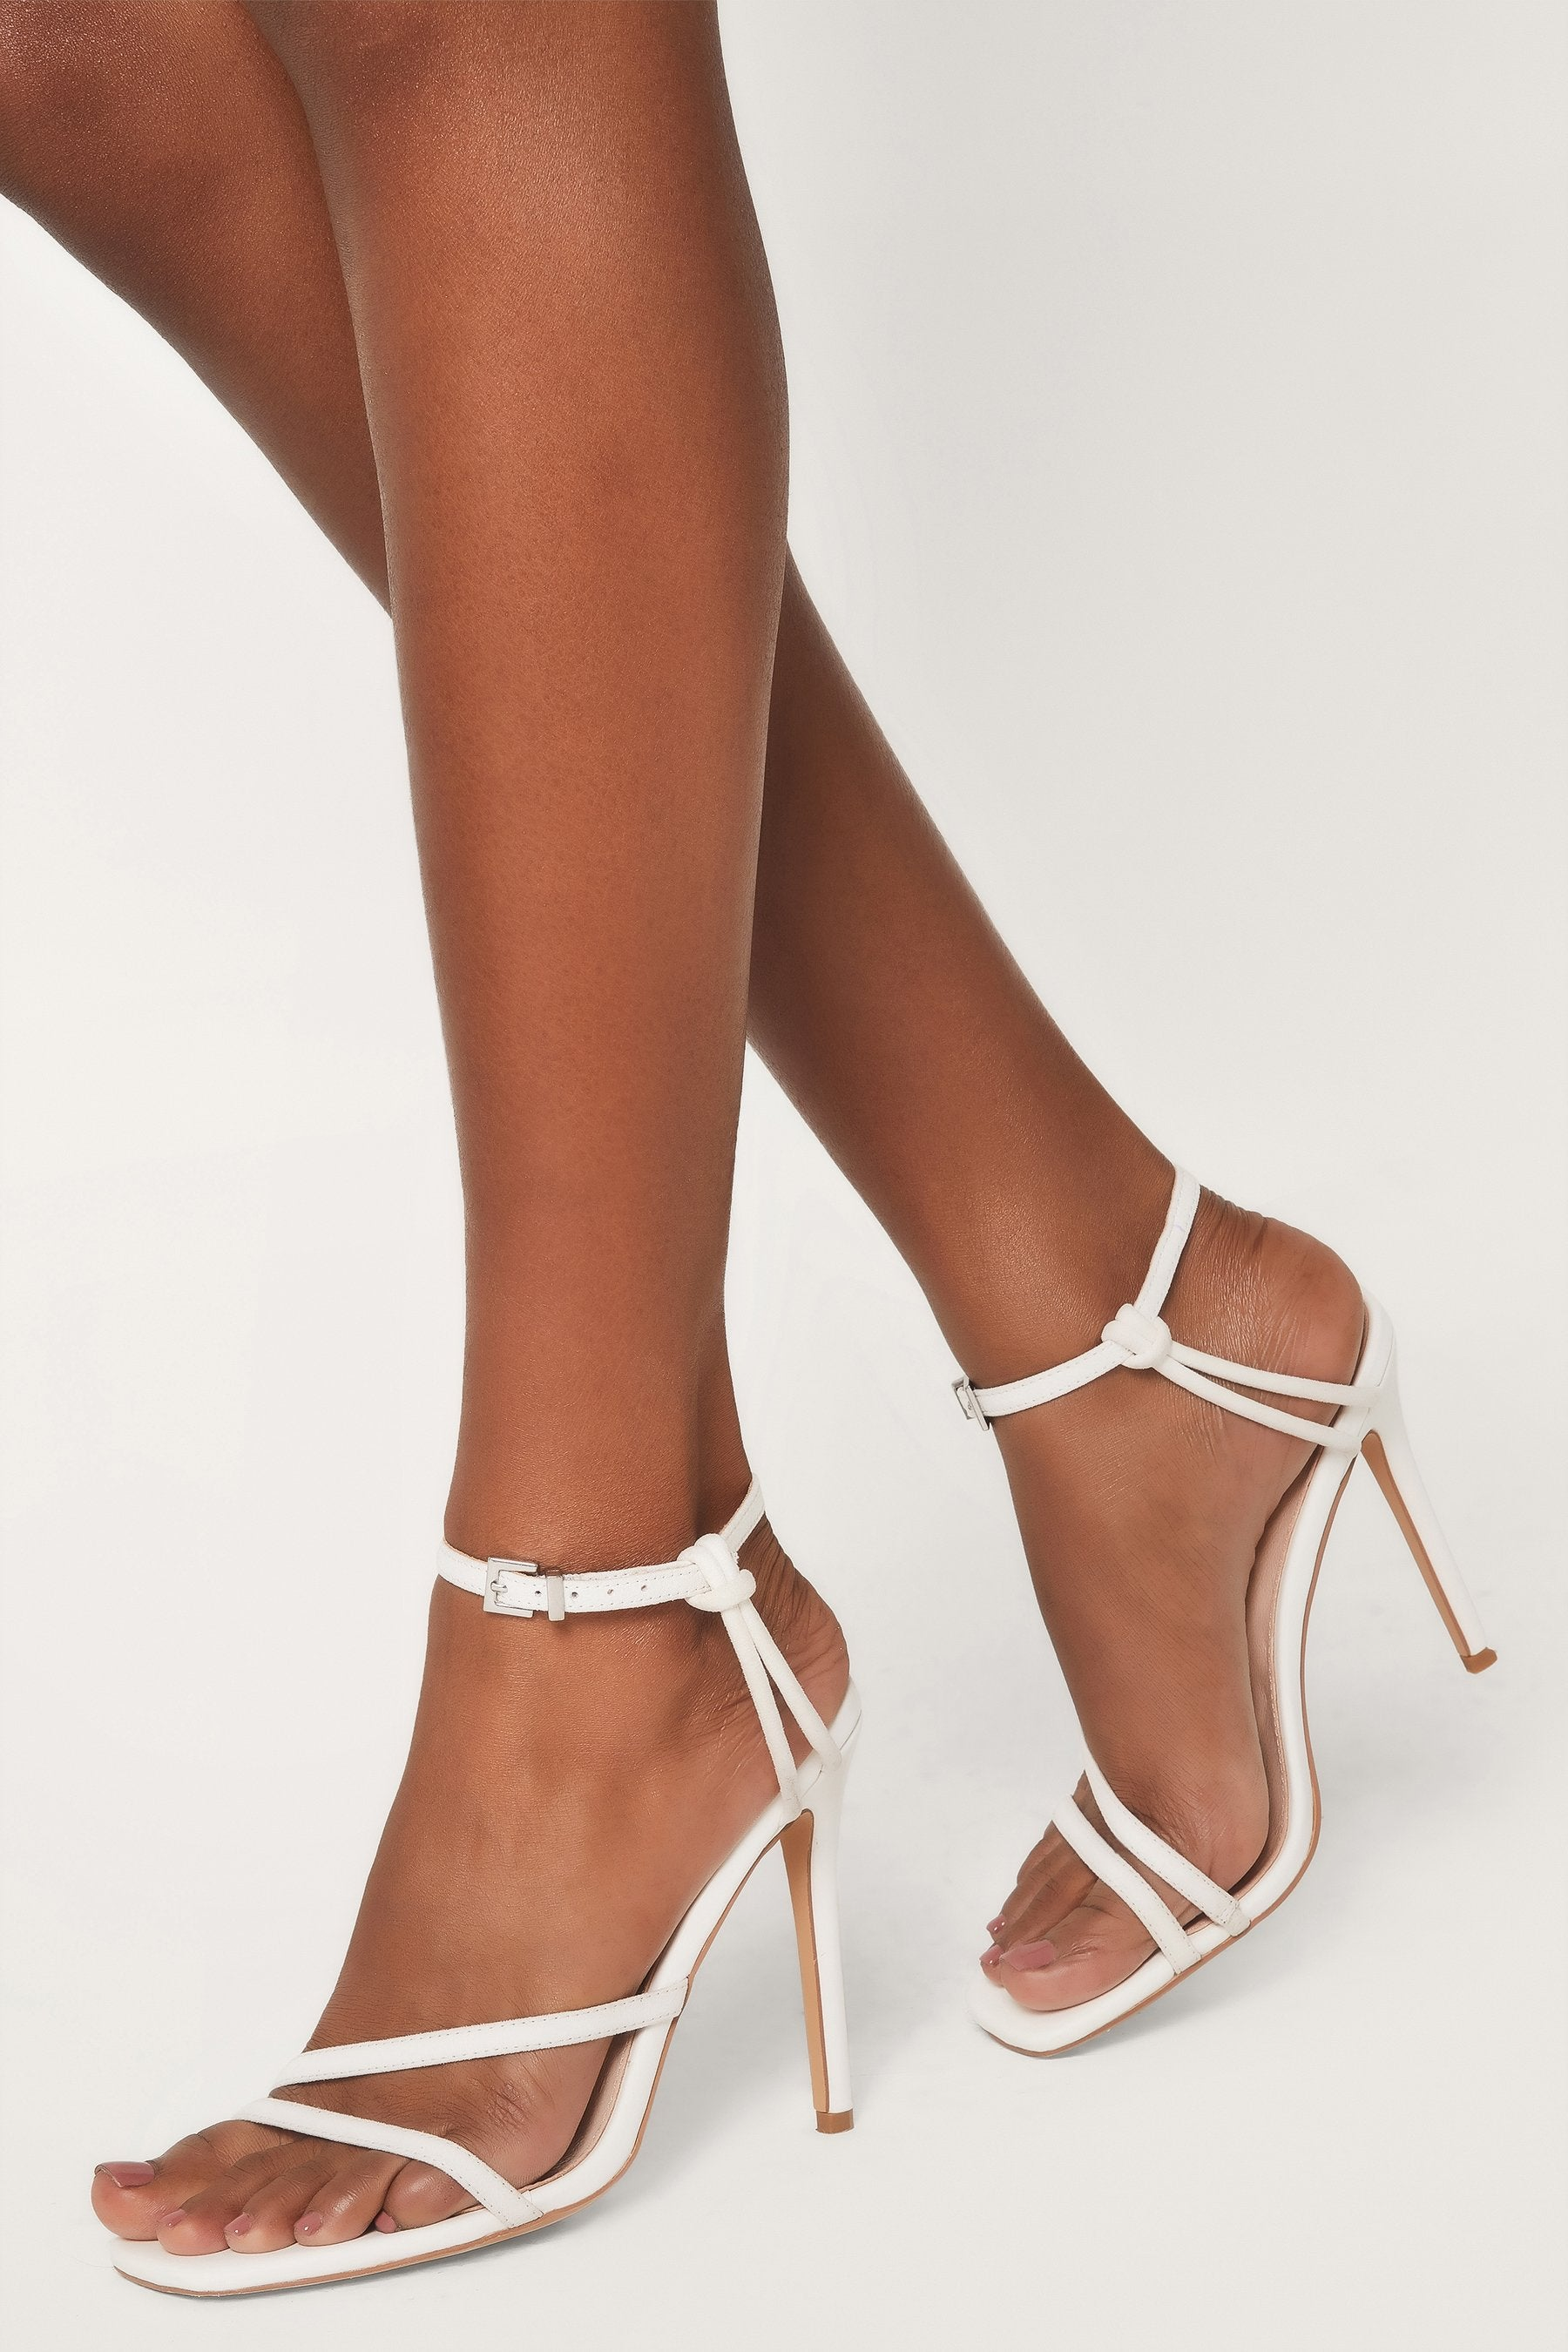 Dimity Strappy High Heel Sandals White